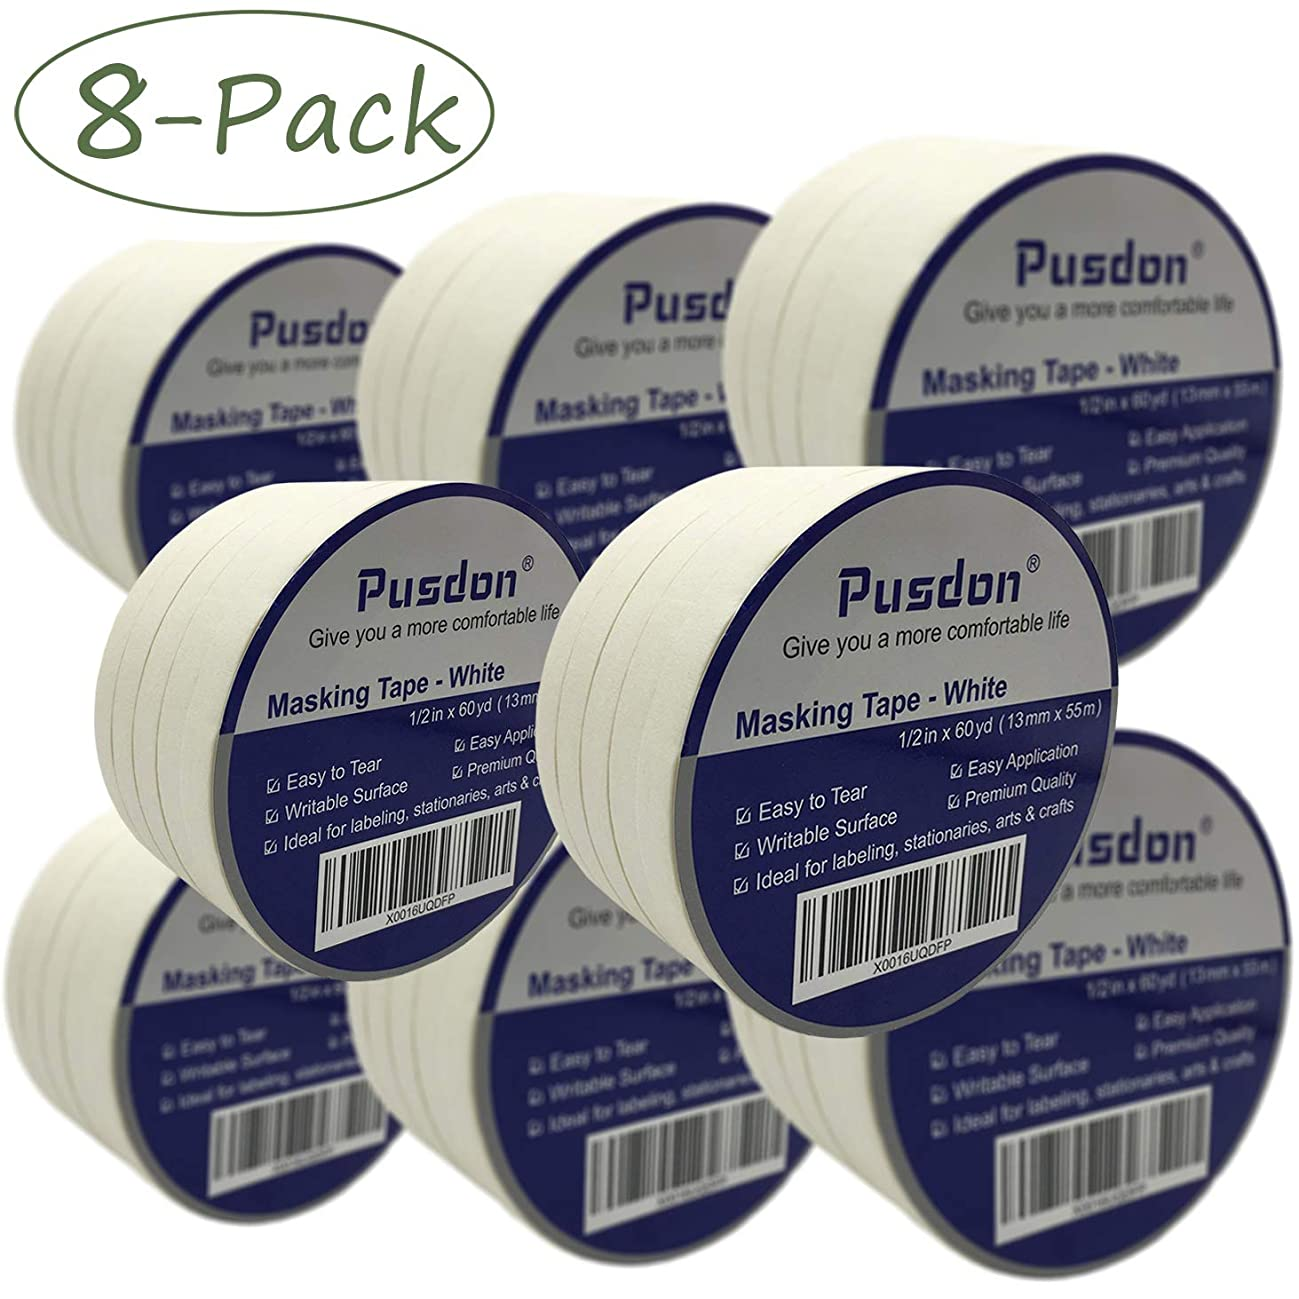 Pusdon White Masking Tape 40 Rolls, 8 Pack, Each Roll 1/2-Inch x 60 Yards, Ideal for School, Office, Label, Arts or Crafts Use